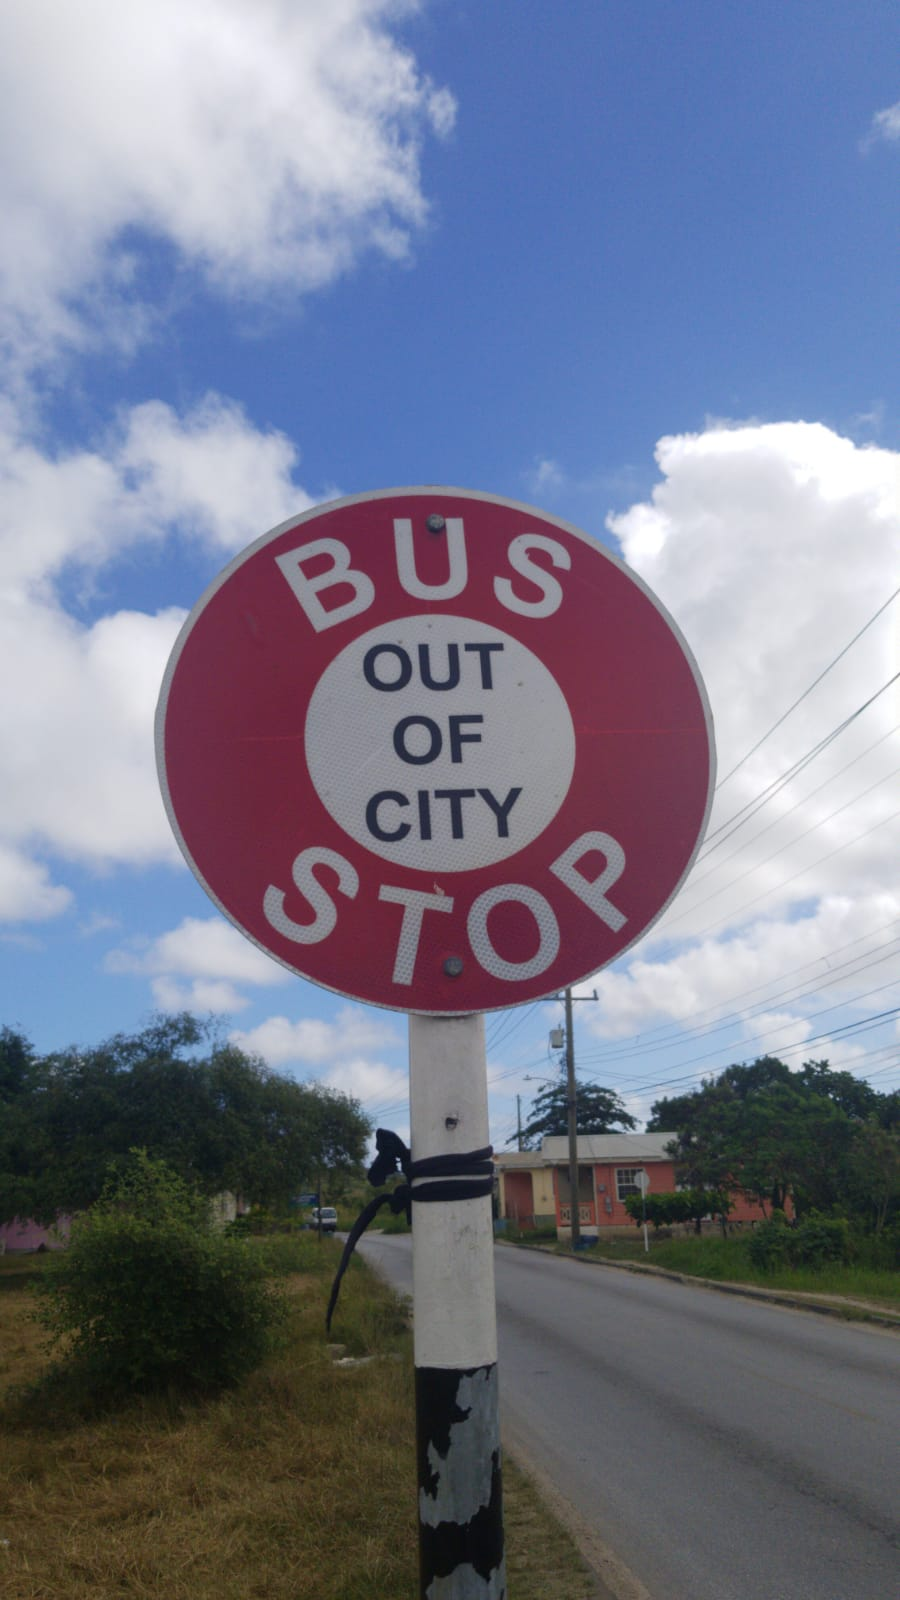 Out of City bus stop sign in barbados